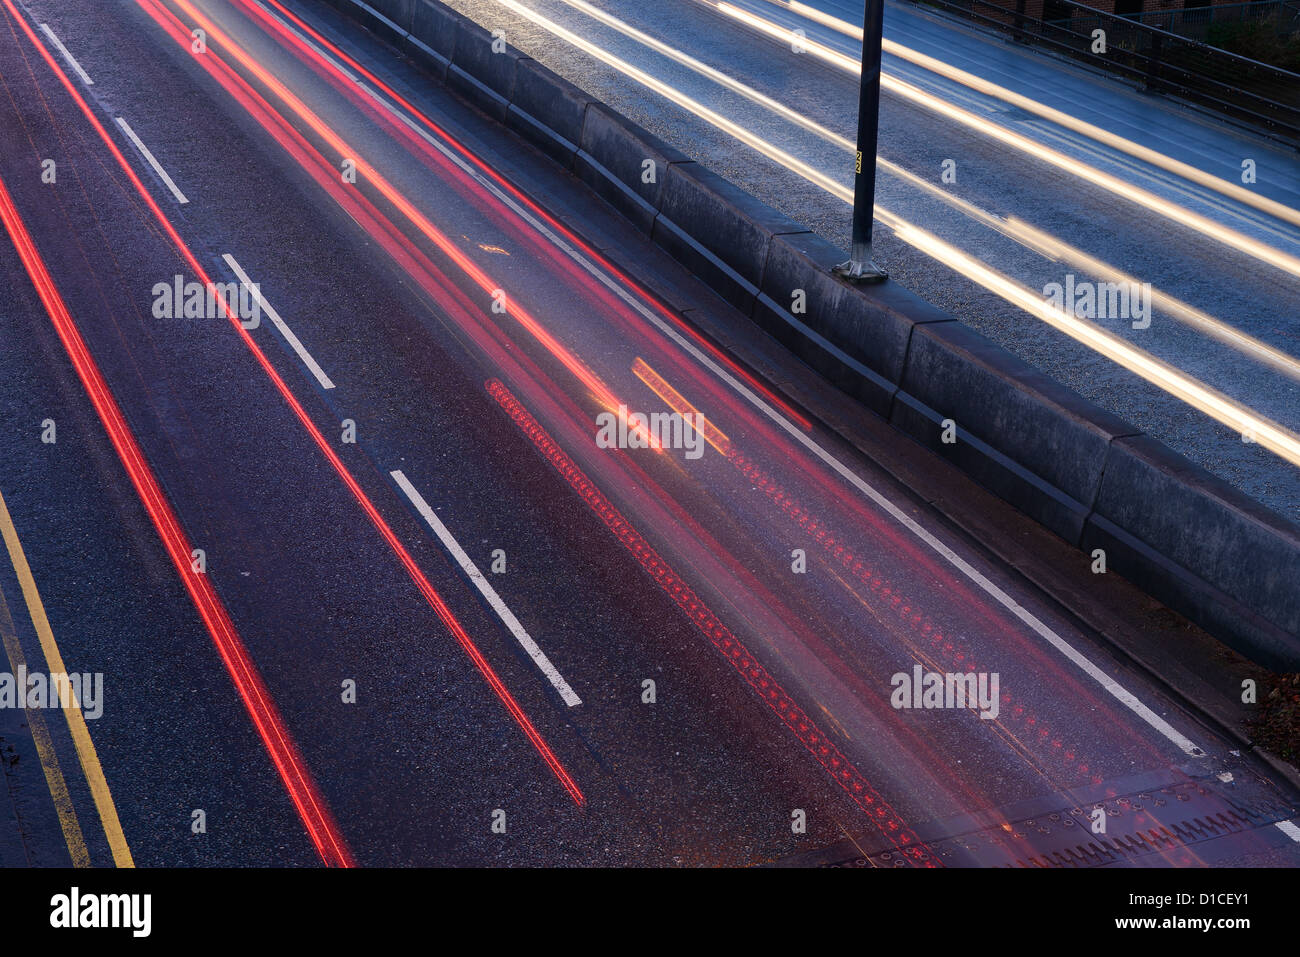 Car traffic light trails on a dual carriageway - Stock Image